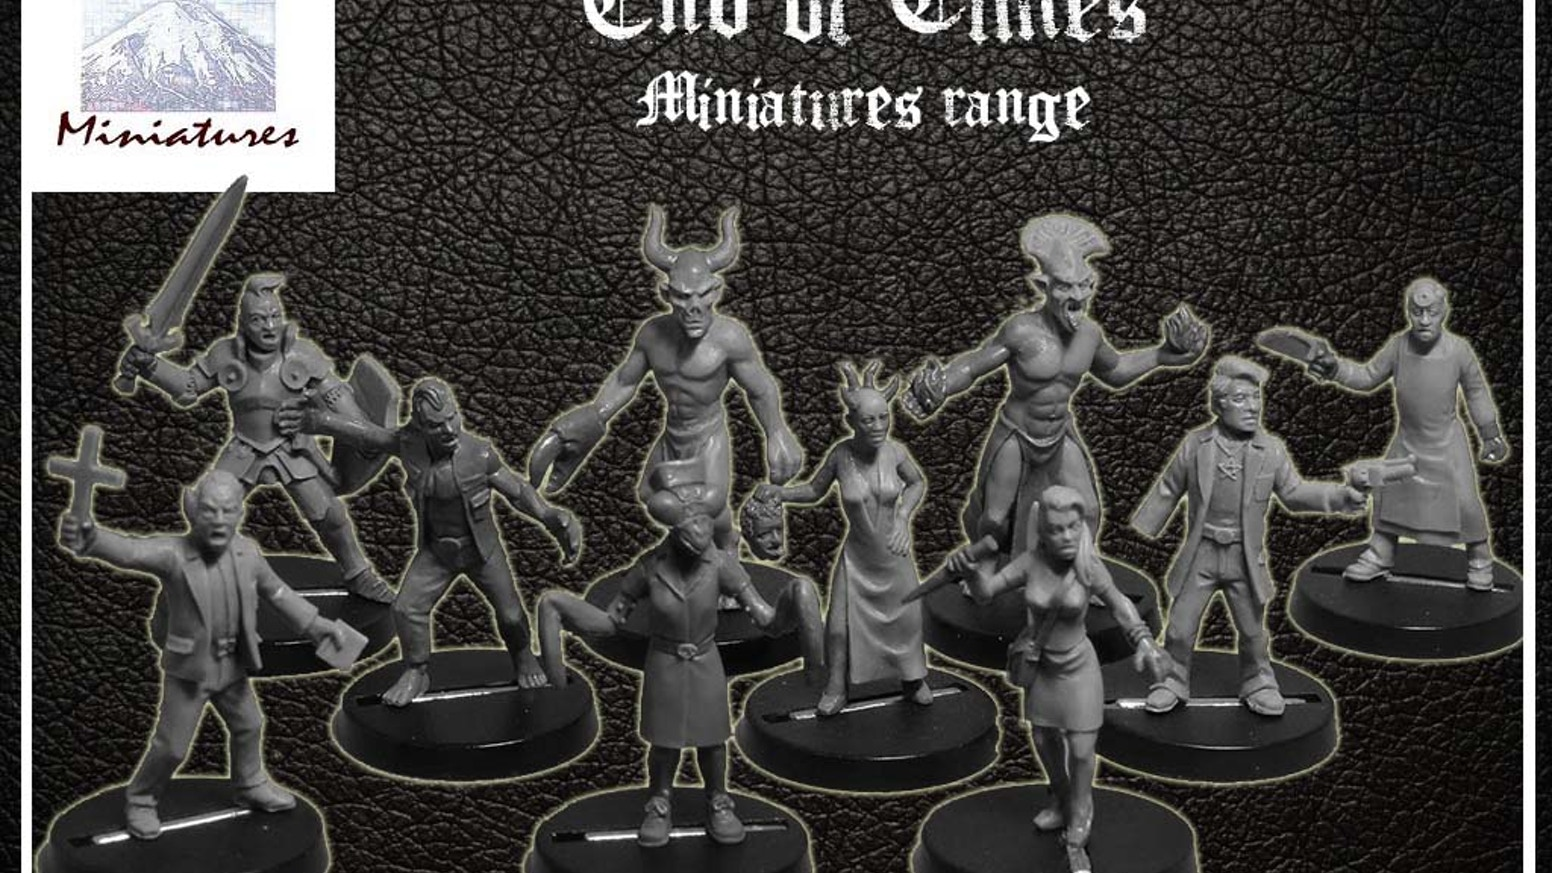 The End of Times! is a miniature range set in the near future where brave investigators are attempting to prevent the coming apocalypse